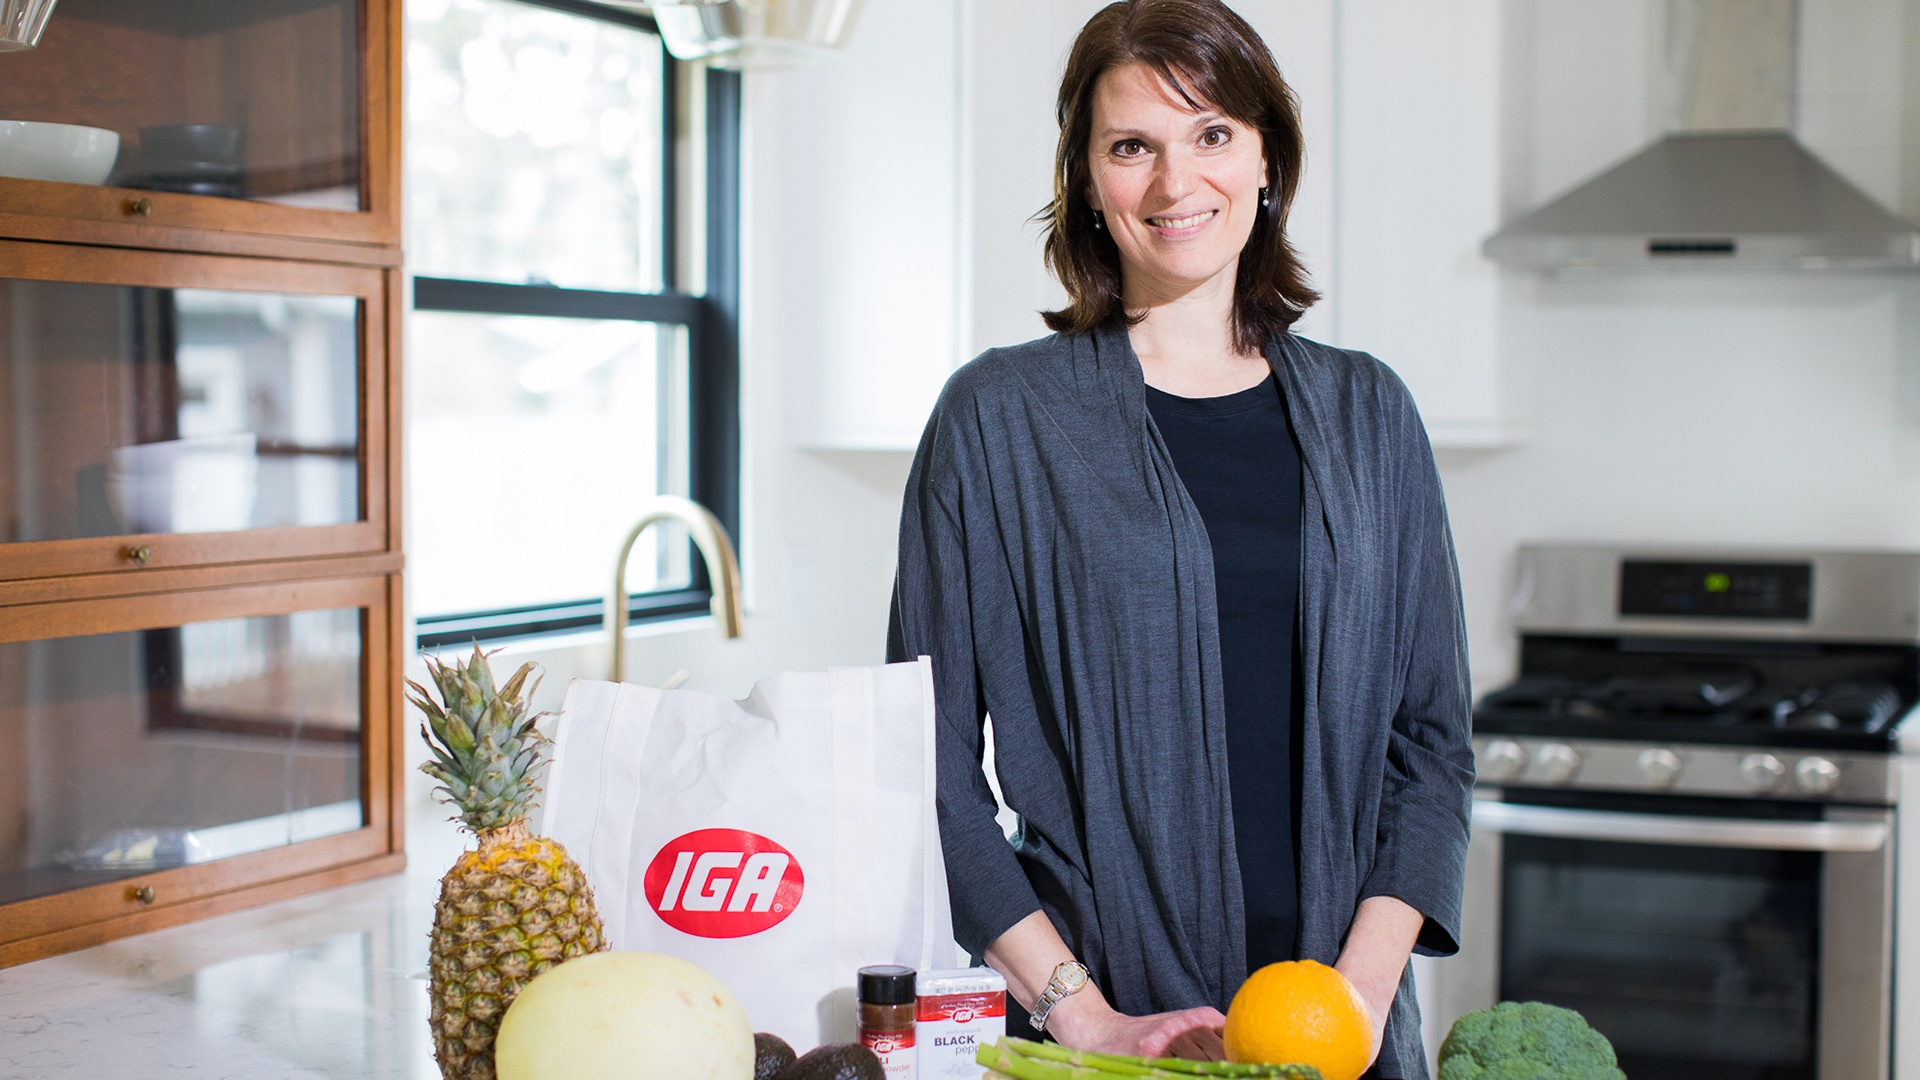 Kim our nutritionist in kitchen with IGA groceries